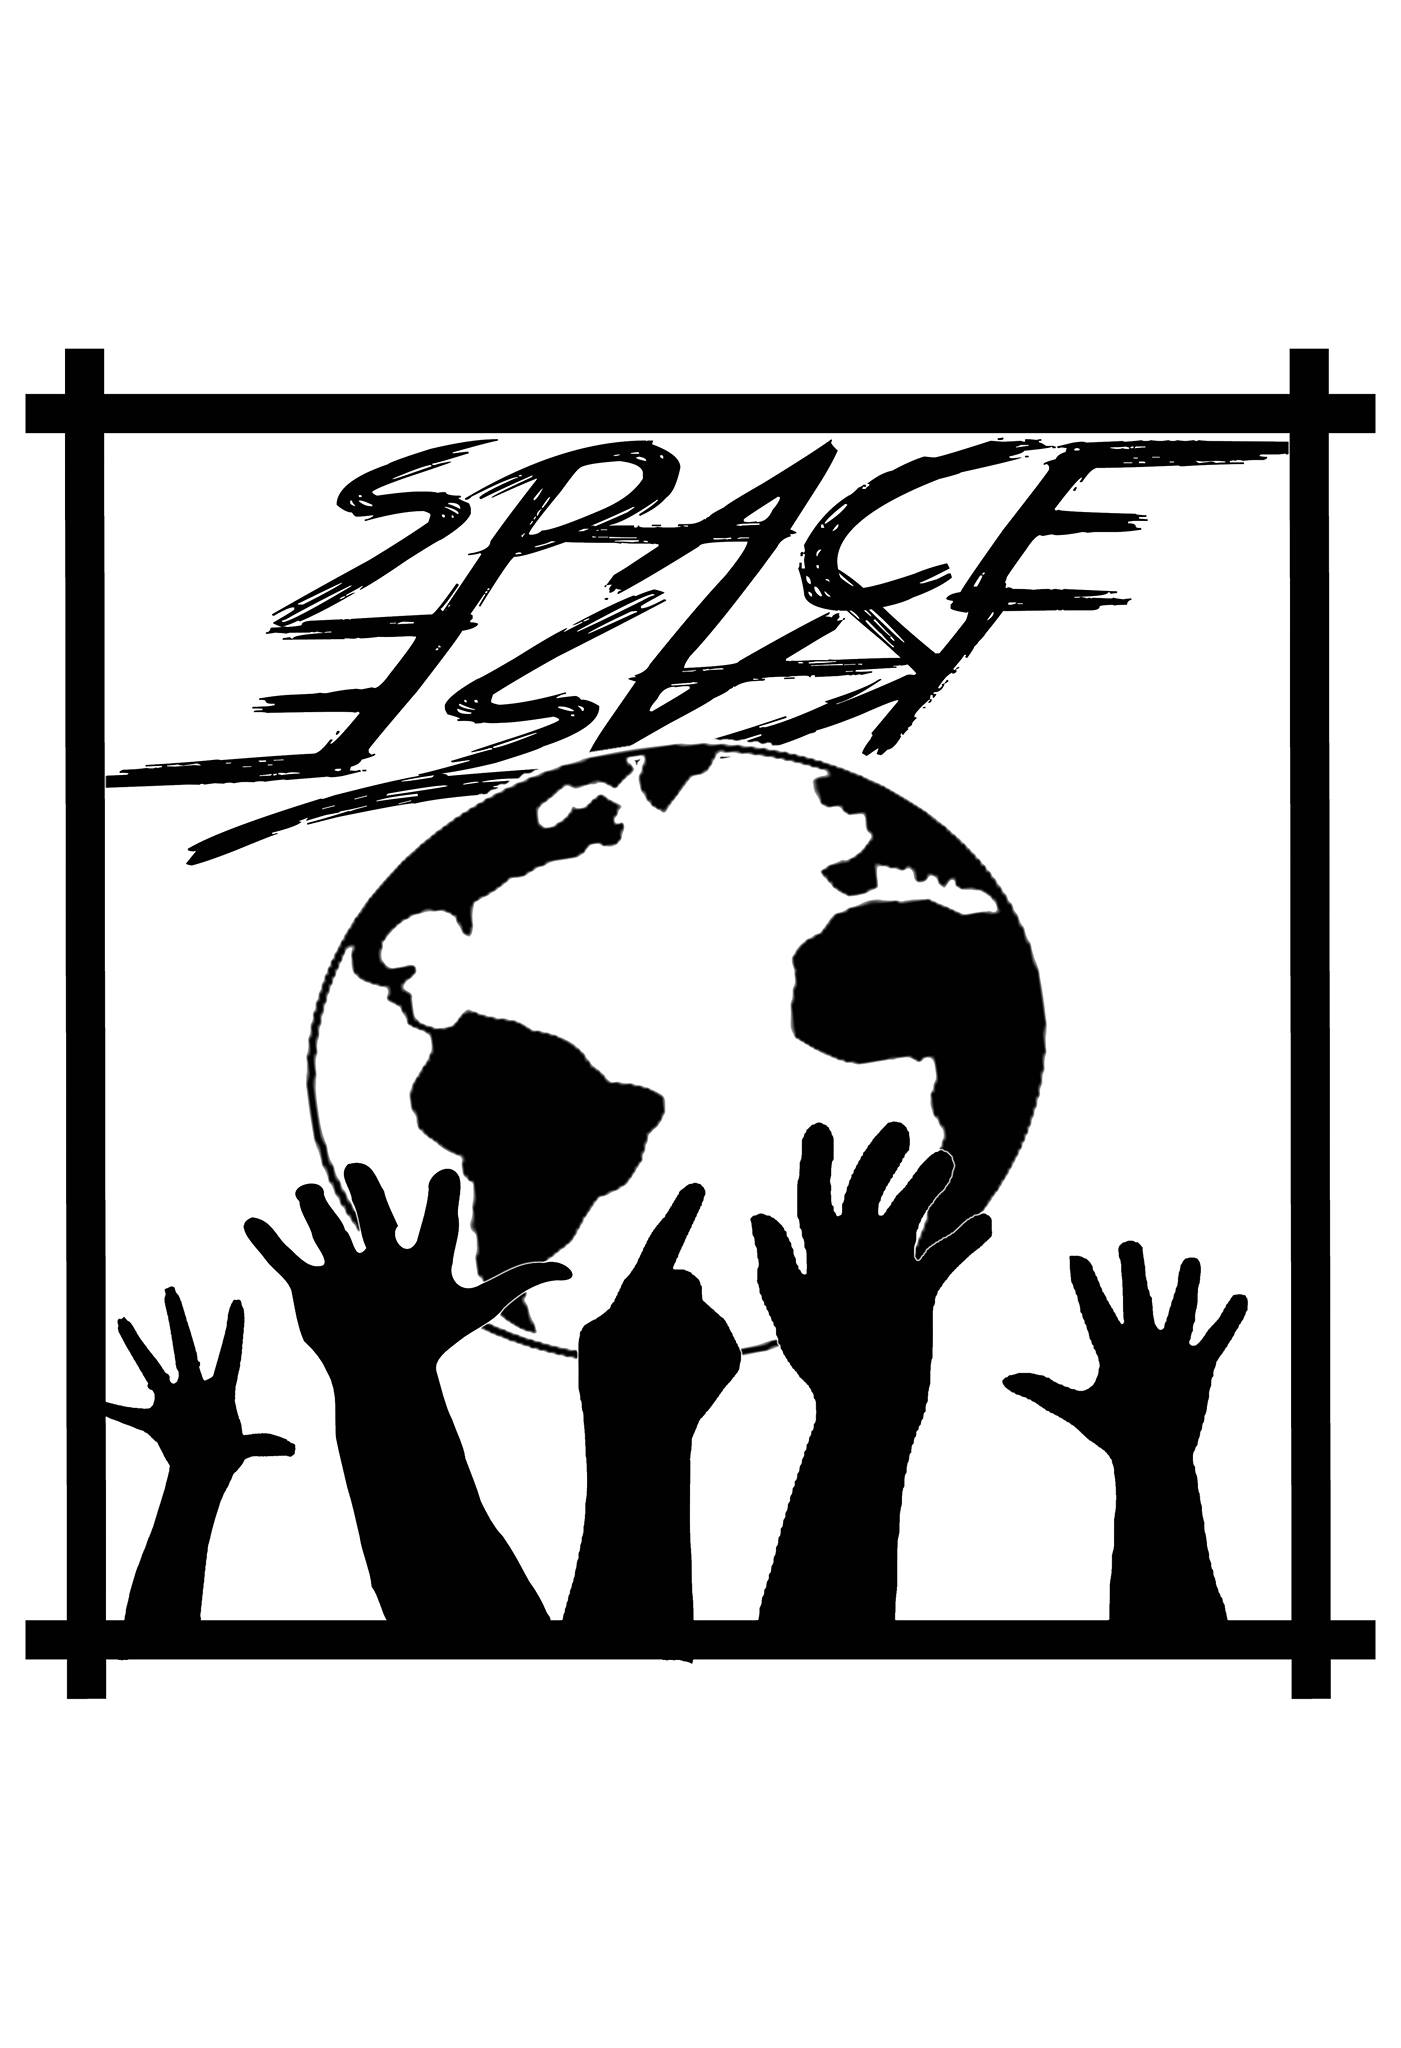 Space Kase logo.jpeg